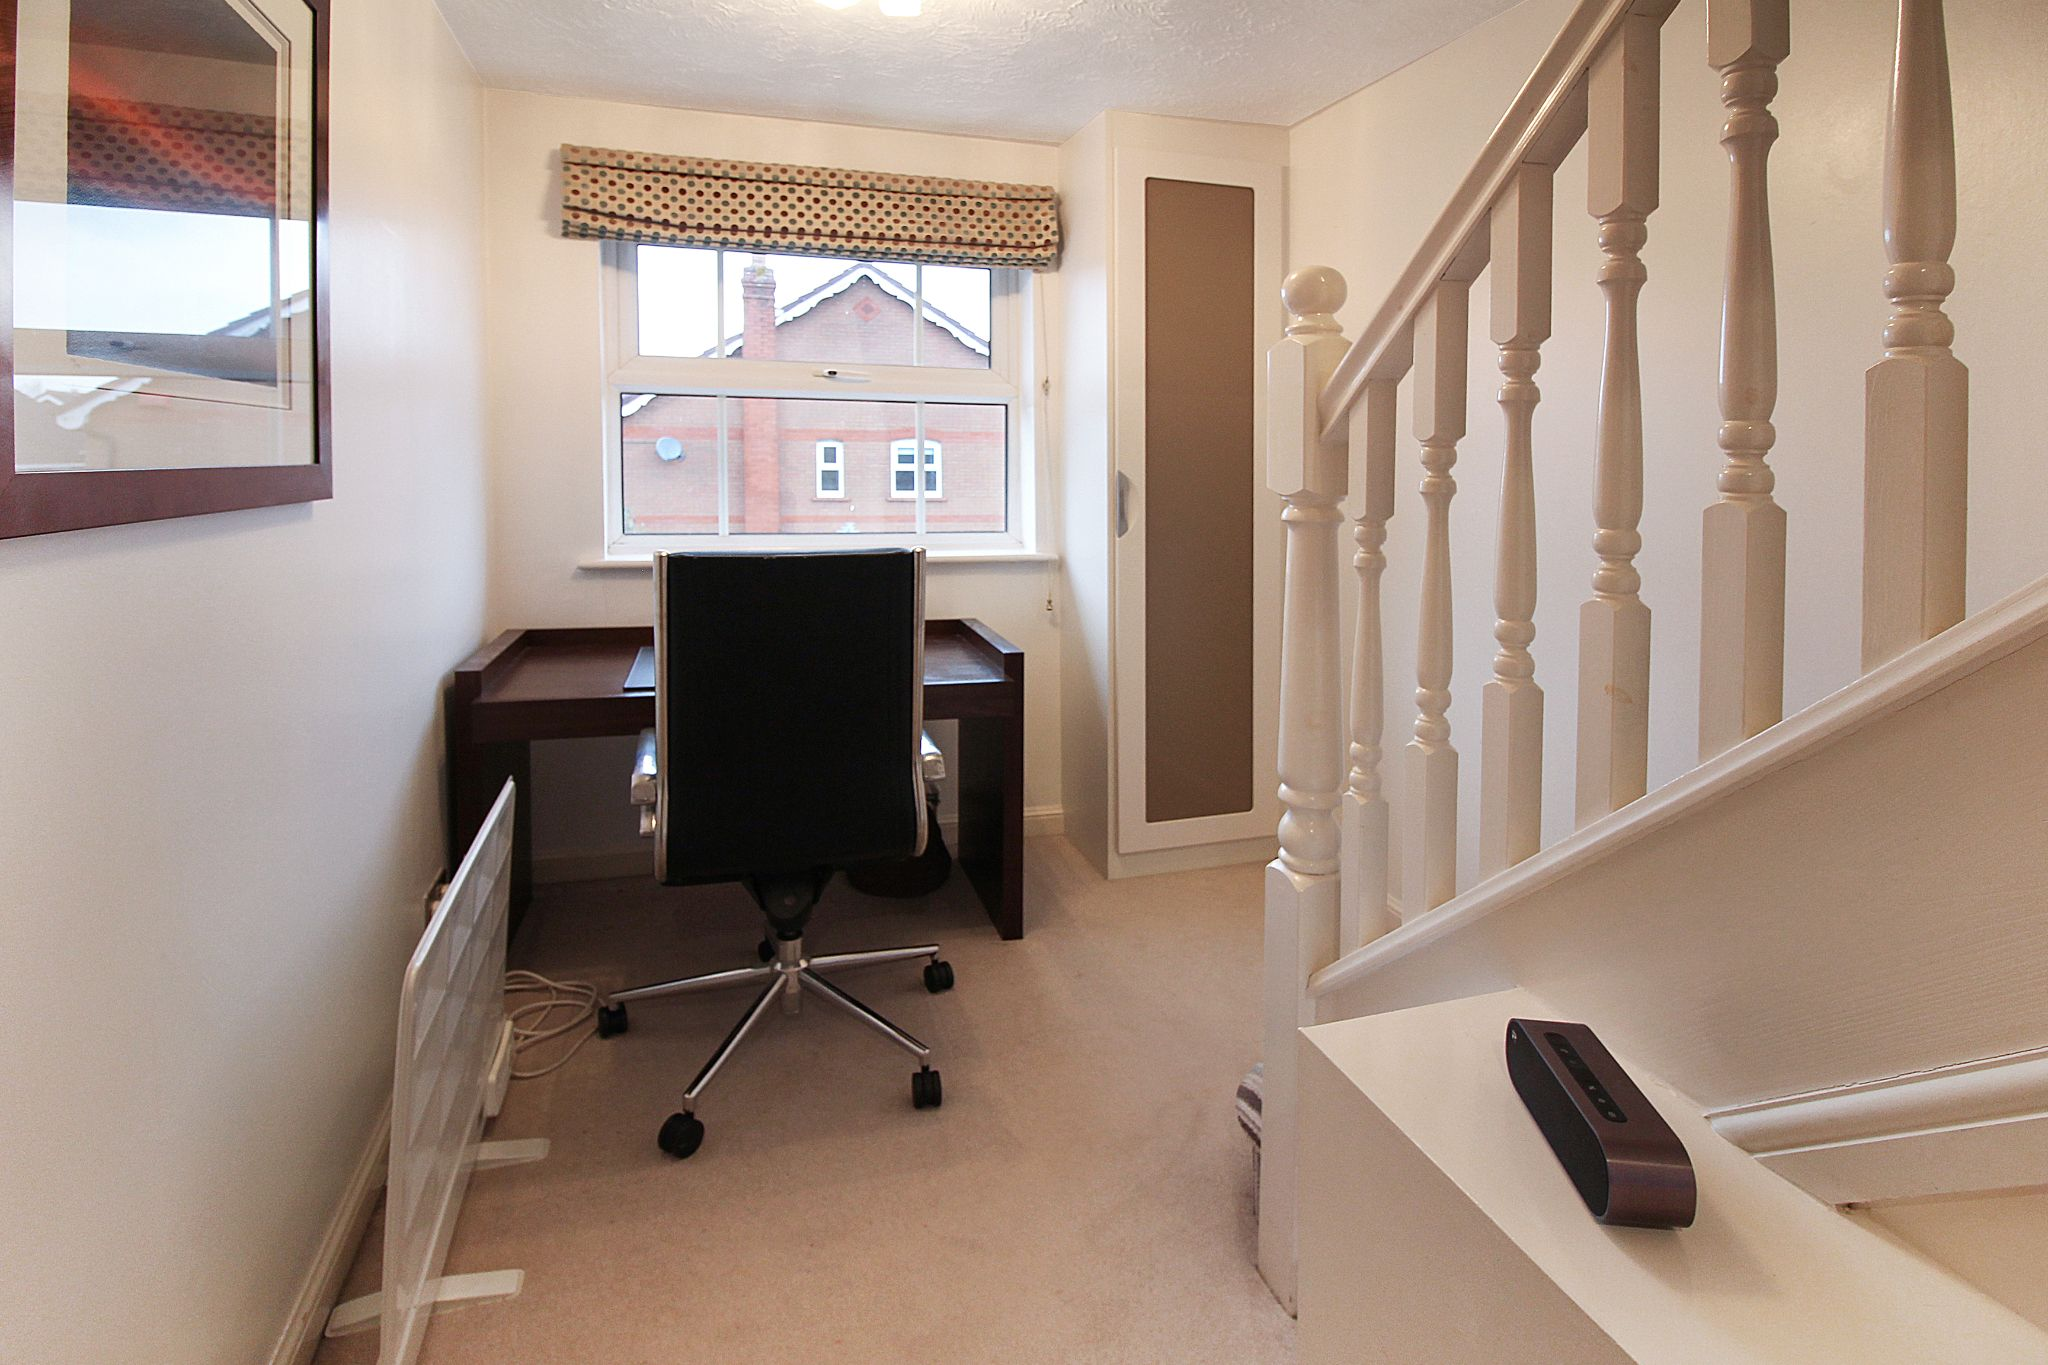 5 bedroom detached house SSTC in Solihull - Photograph 11.